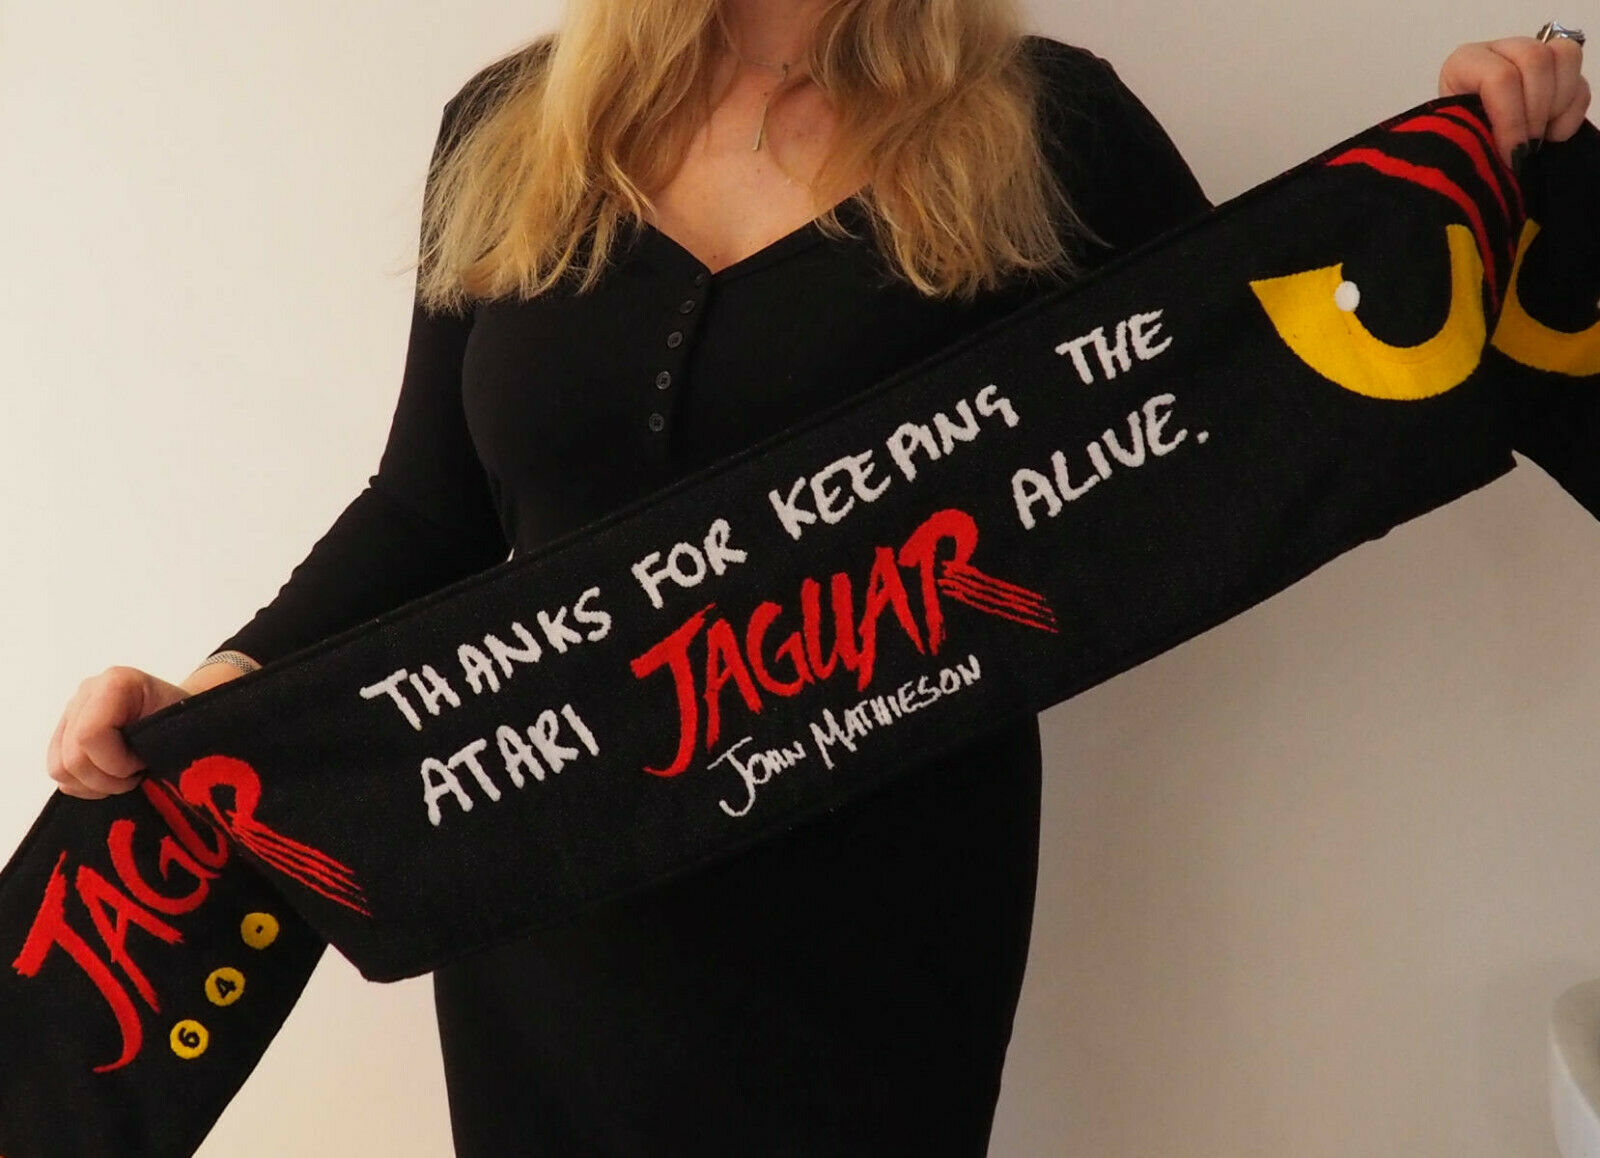 http://www.retroventure.eu/images/products/scarves/forum/01.jpg